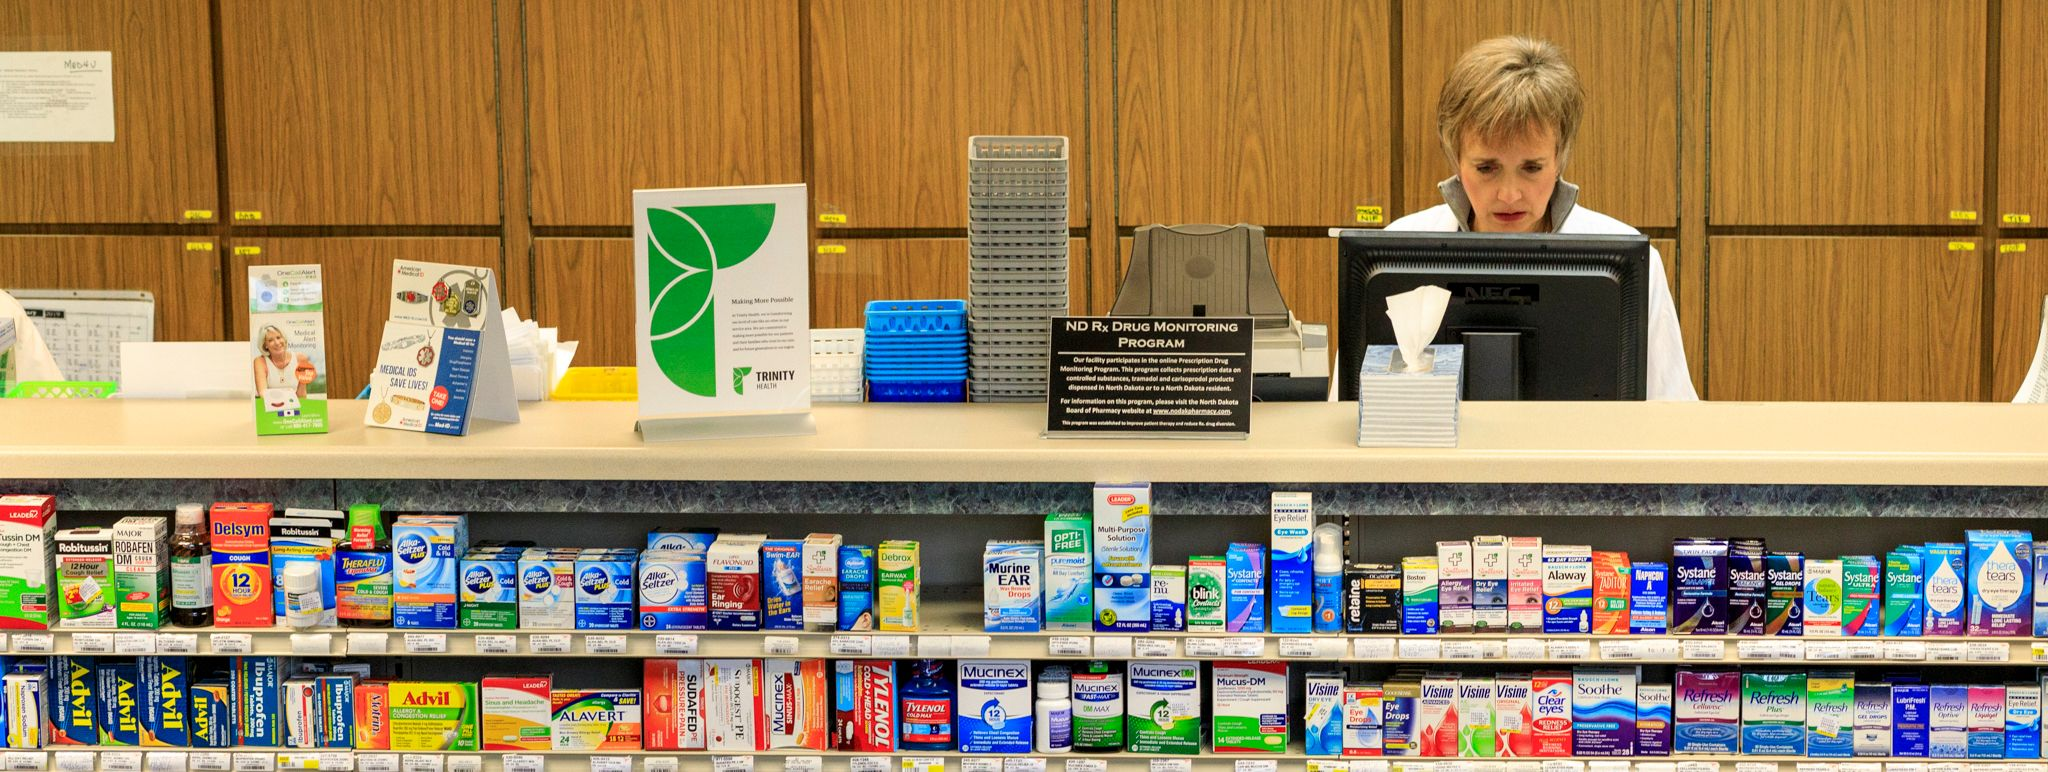 Welcome to B&B Northwest Pharmacy, where you receive prompt, appropriate services and individualized care from our professionally licensed pharmacists and technicians.